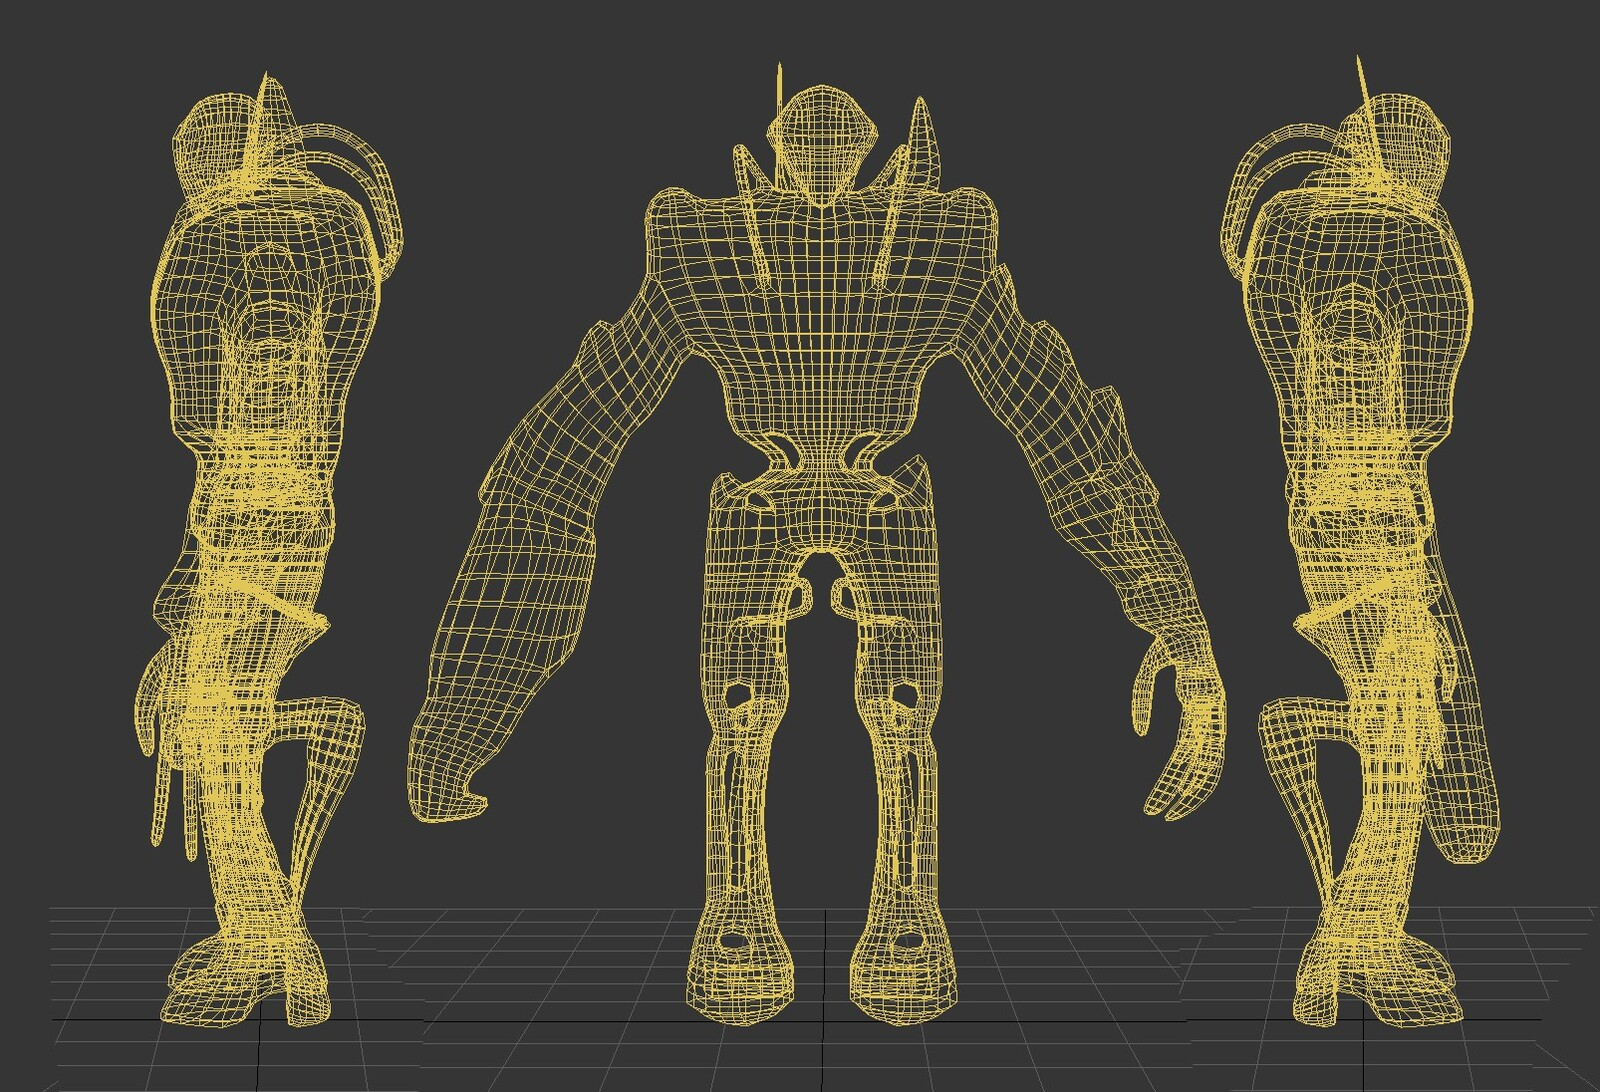 3DS Max Polygon Model Wireframe View Before Sculpting